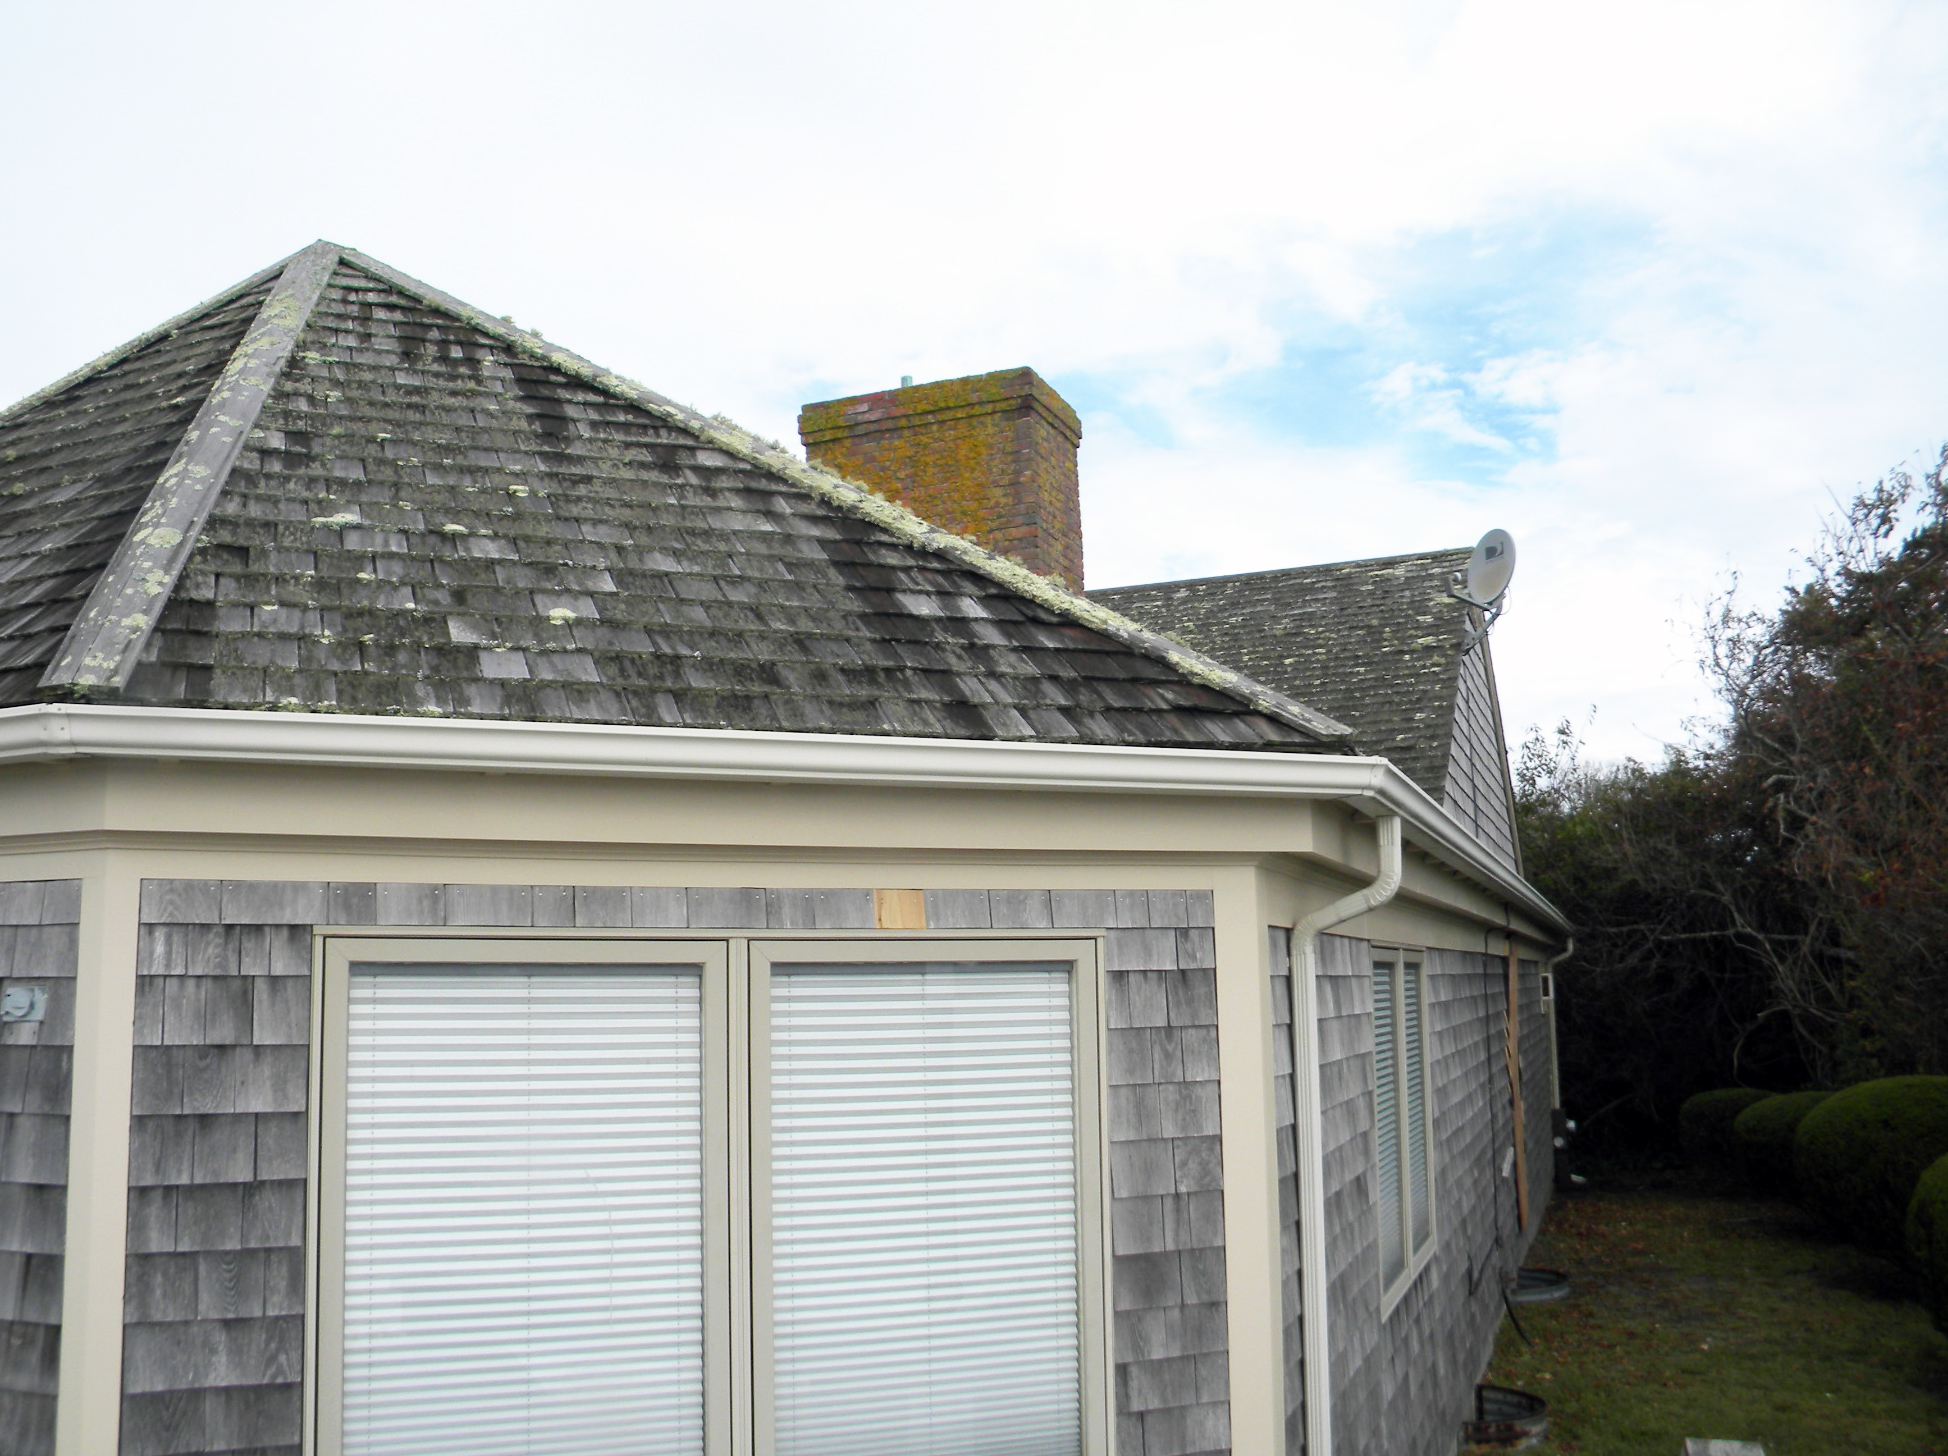 Roof Cleaning Cape Cod MA & House Washing Portfolio | Clean My Roof LLC memphite.com